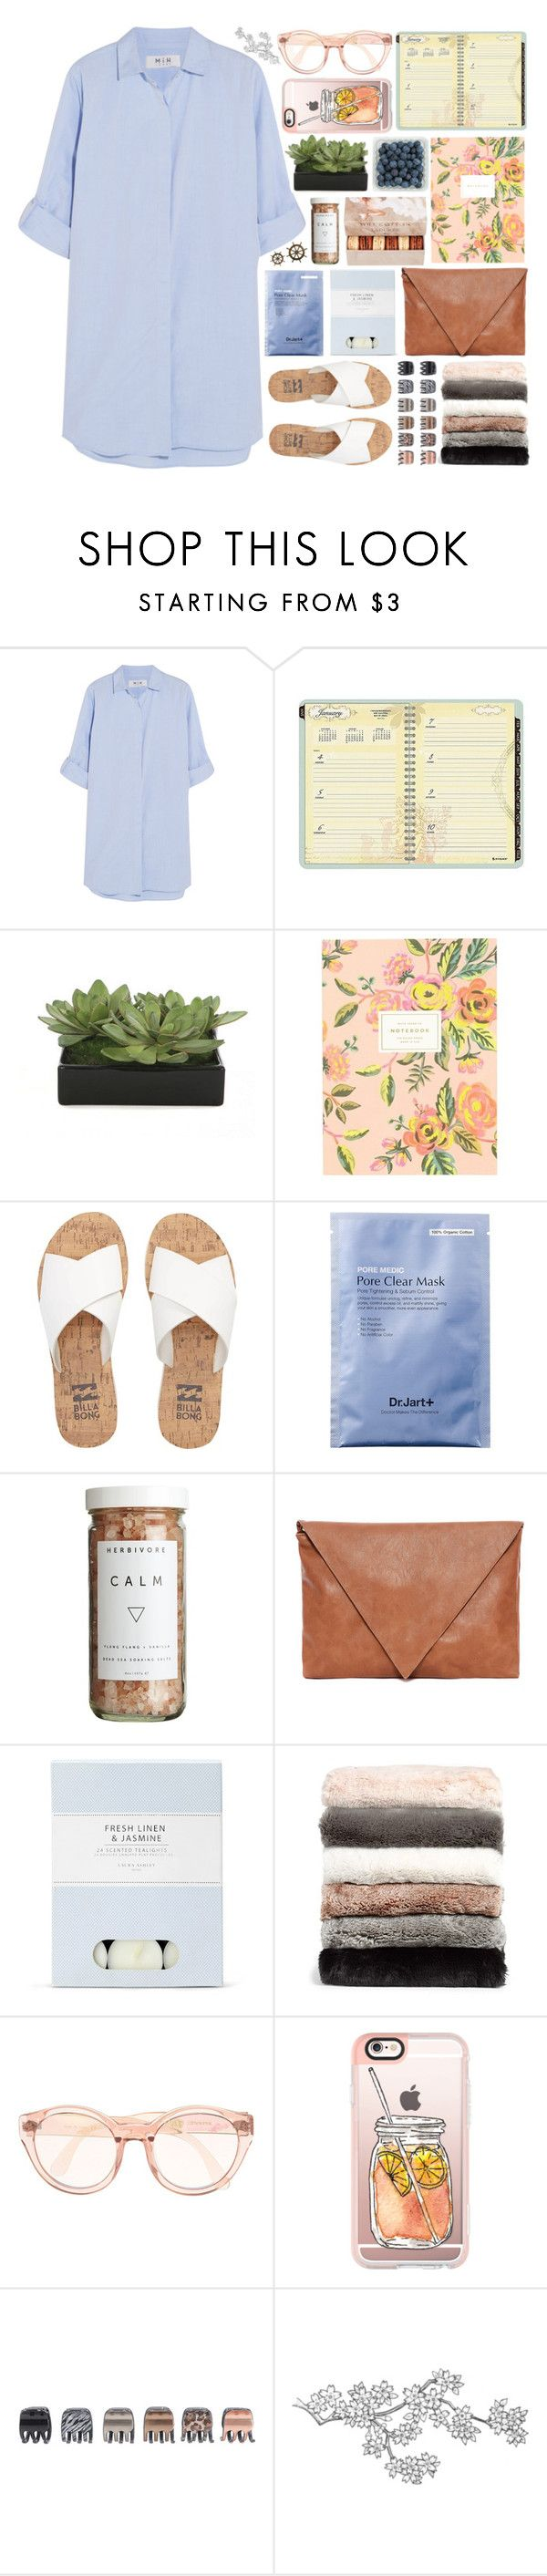 """I think it's strange that you think I'm funny 'cause he never did."" by entirely-simple ❤ liked on Polyvore featuring M.i.h Jeans, AT-A-GLANCE, Ladurée, Lux-Art Silks, Rifle Paper Co, Billabong, CB2, Pull&Bear, Laura Ashley and Nordstrom"